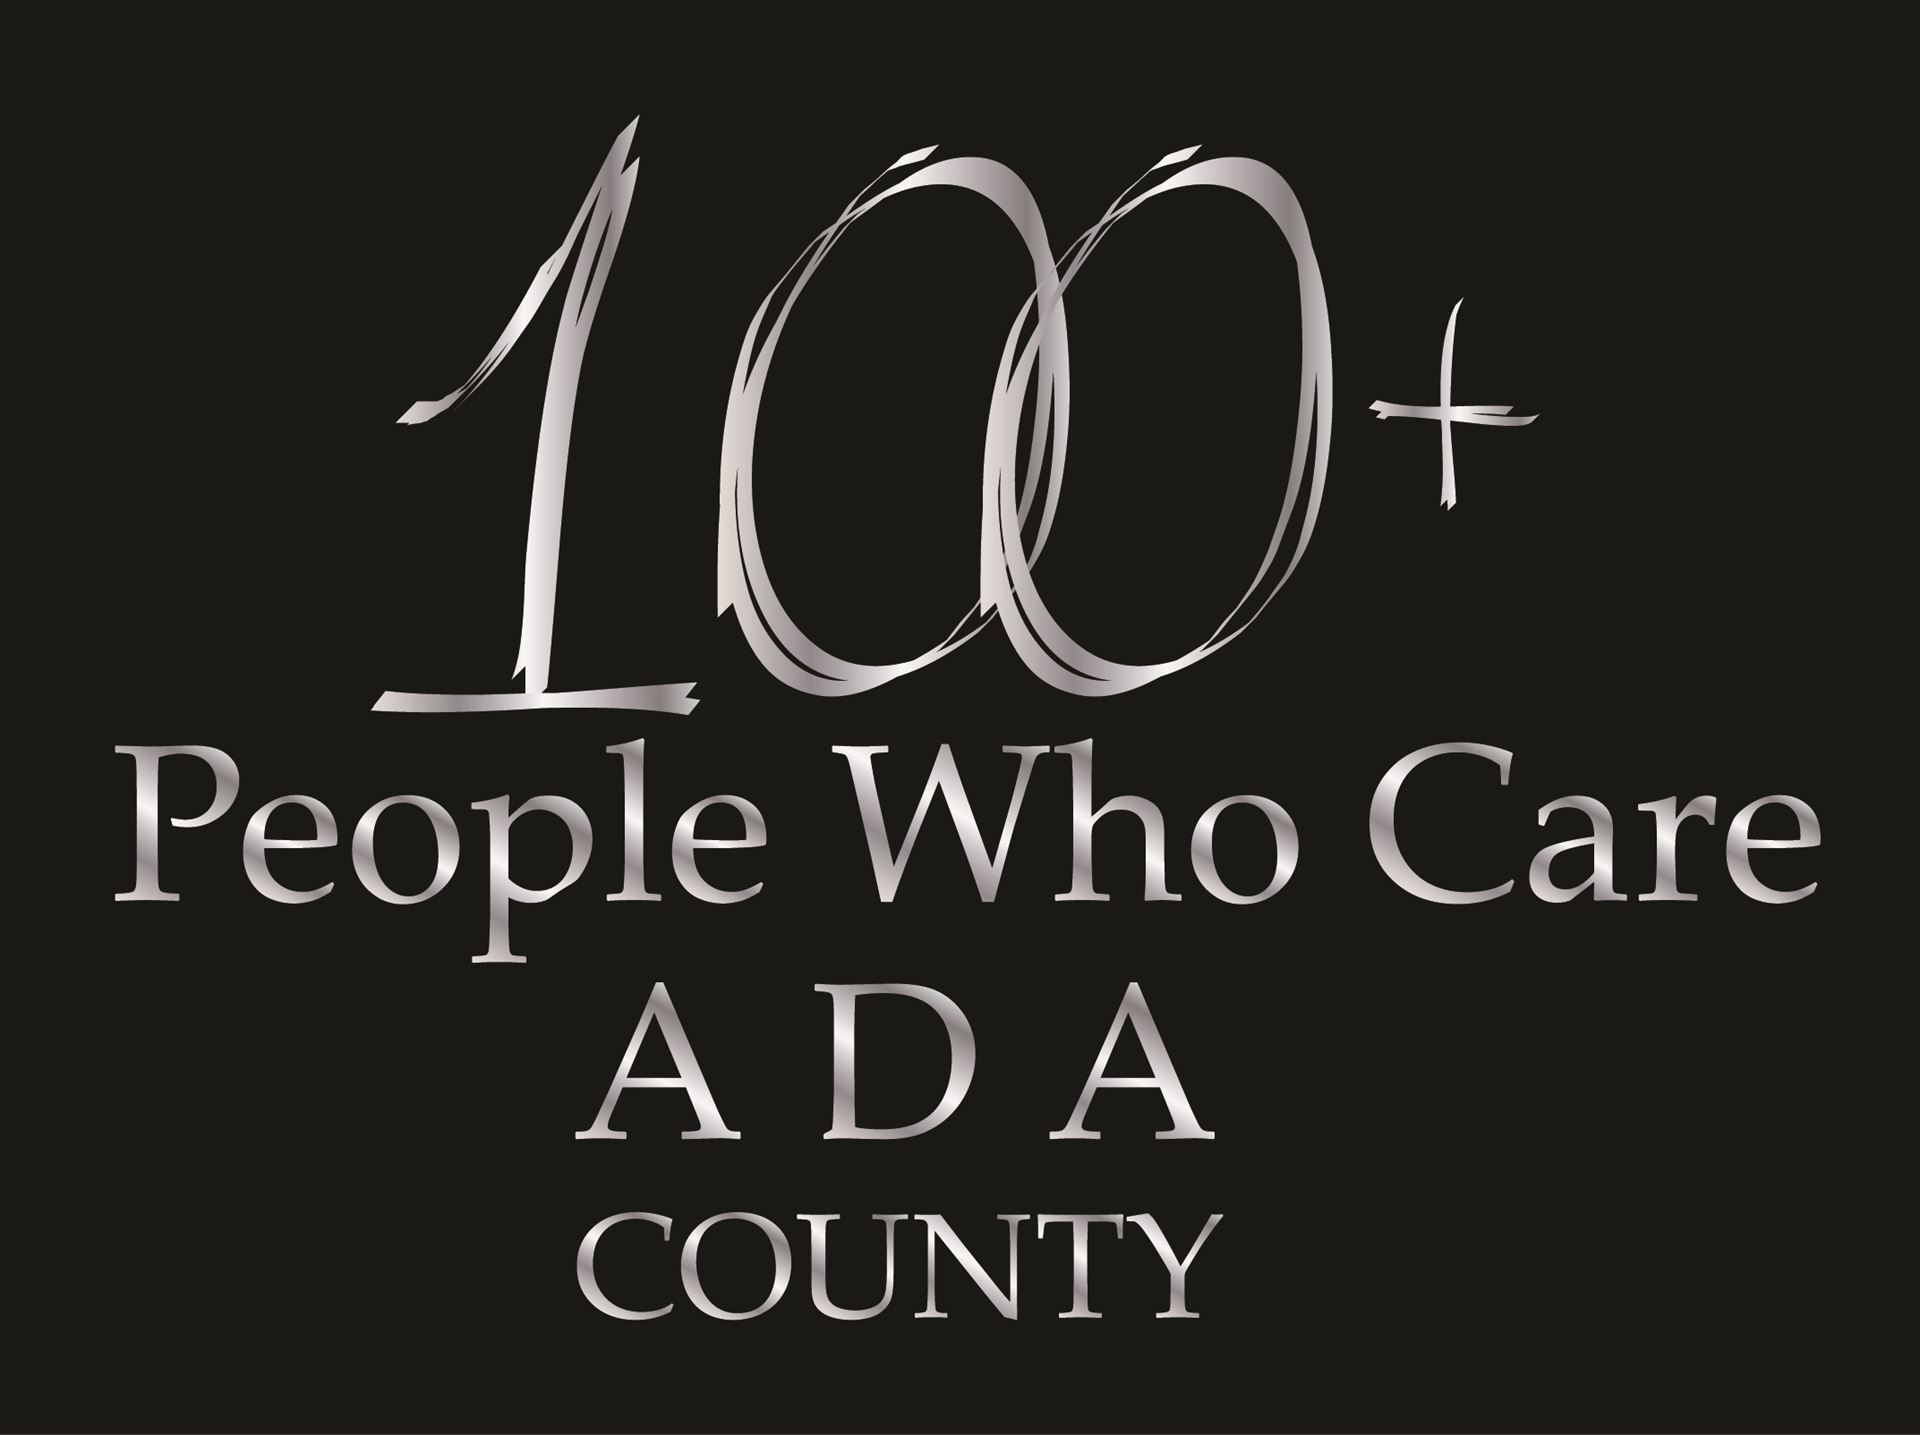 100+ People Who Care ADA County